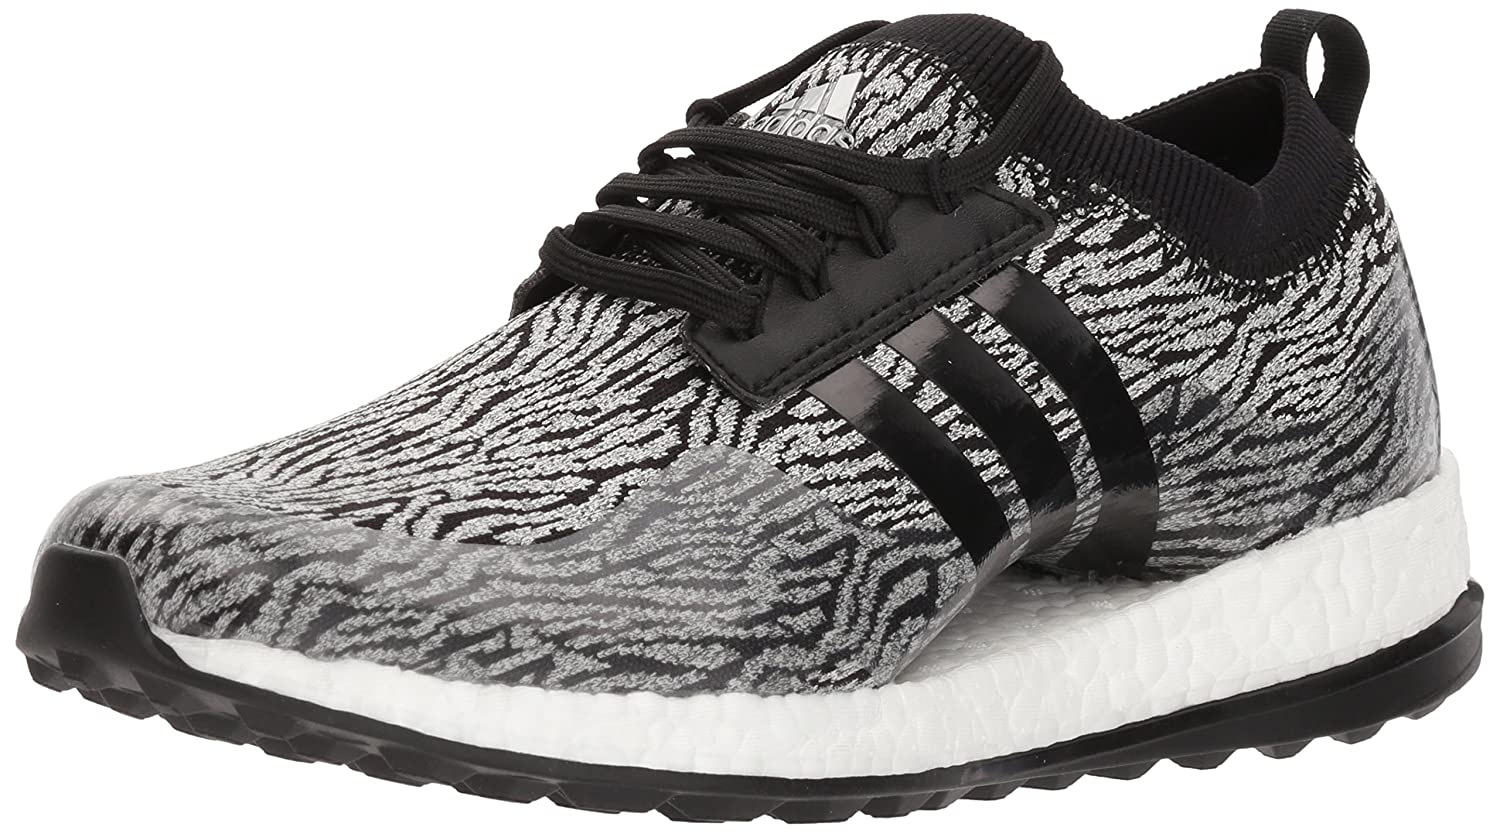 adidas Women's W Pure Boost Xg Golf Shoe B0725Y8B3J 9 B(M) US|Core Black/White/Core Black